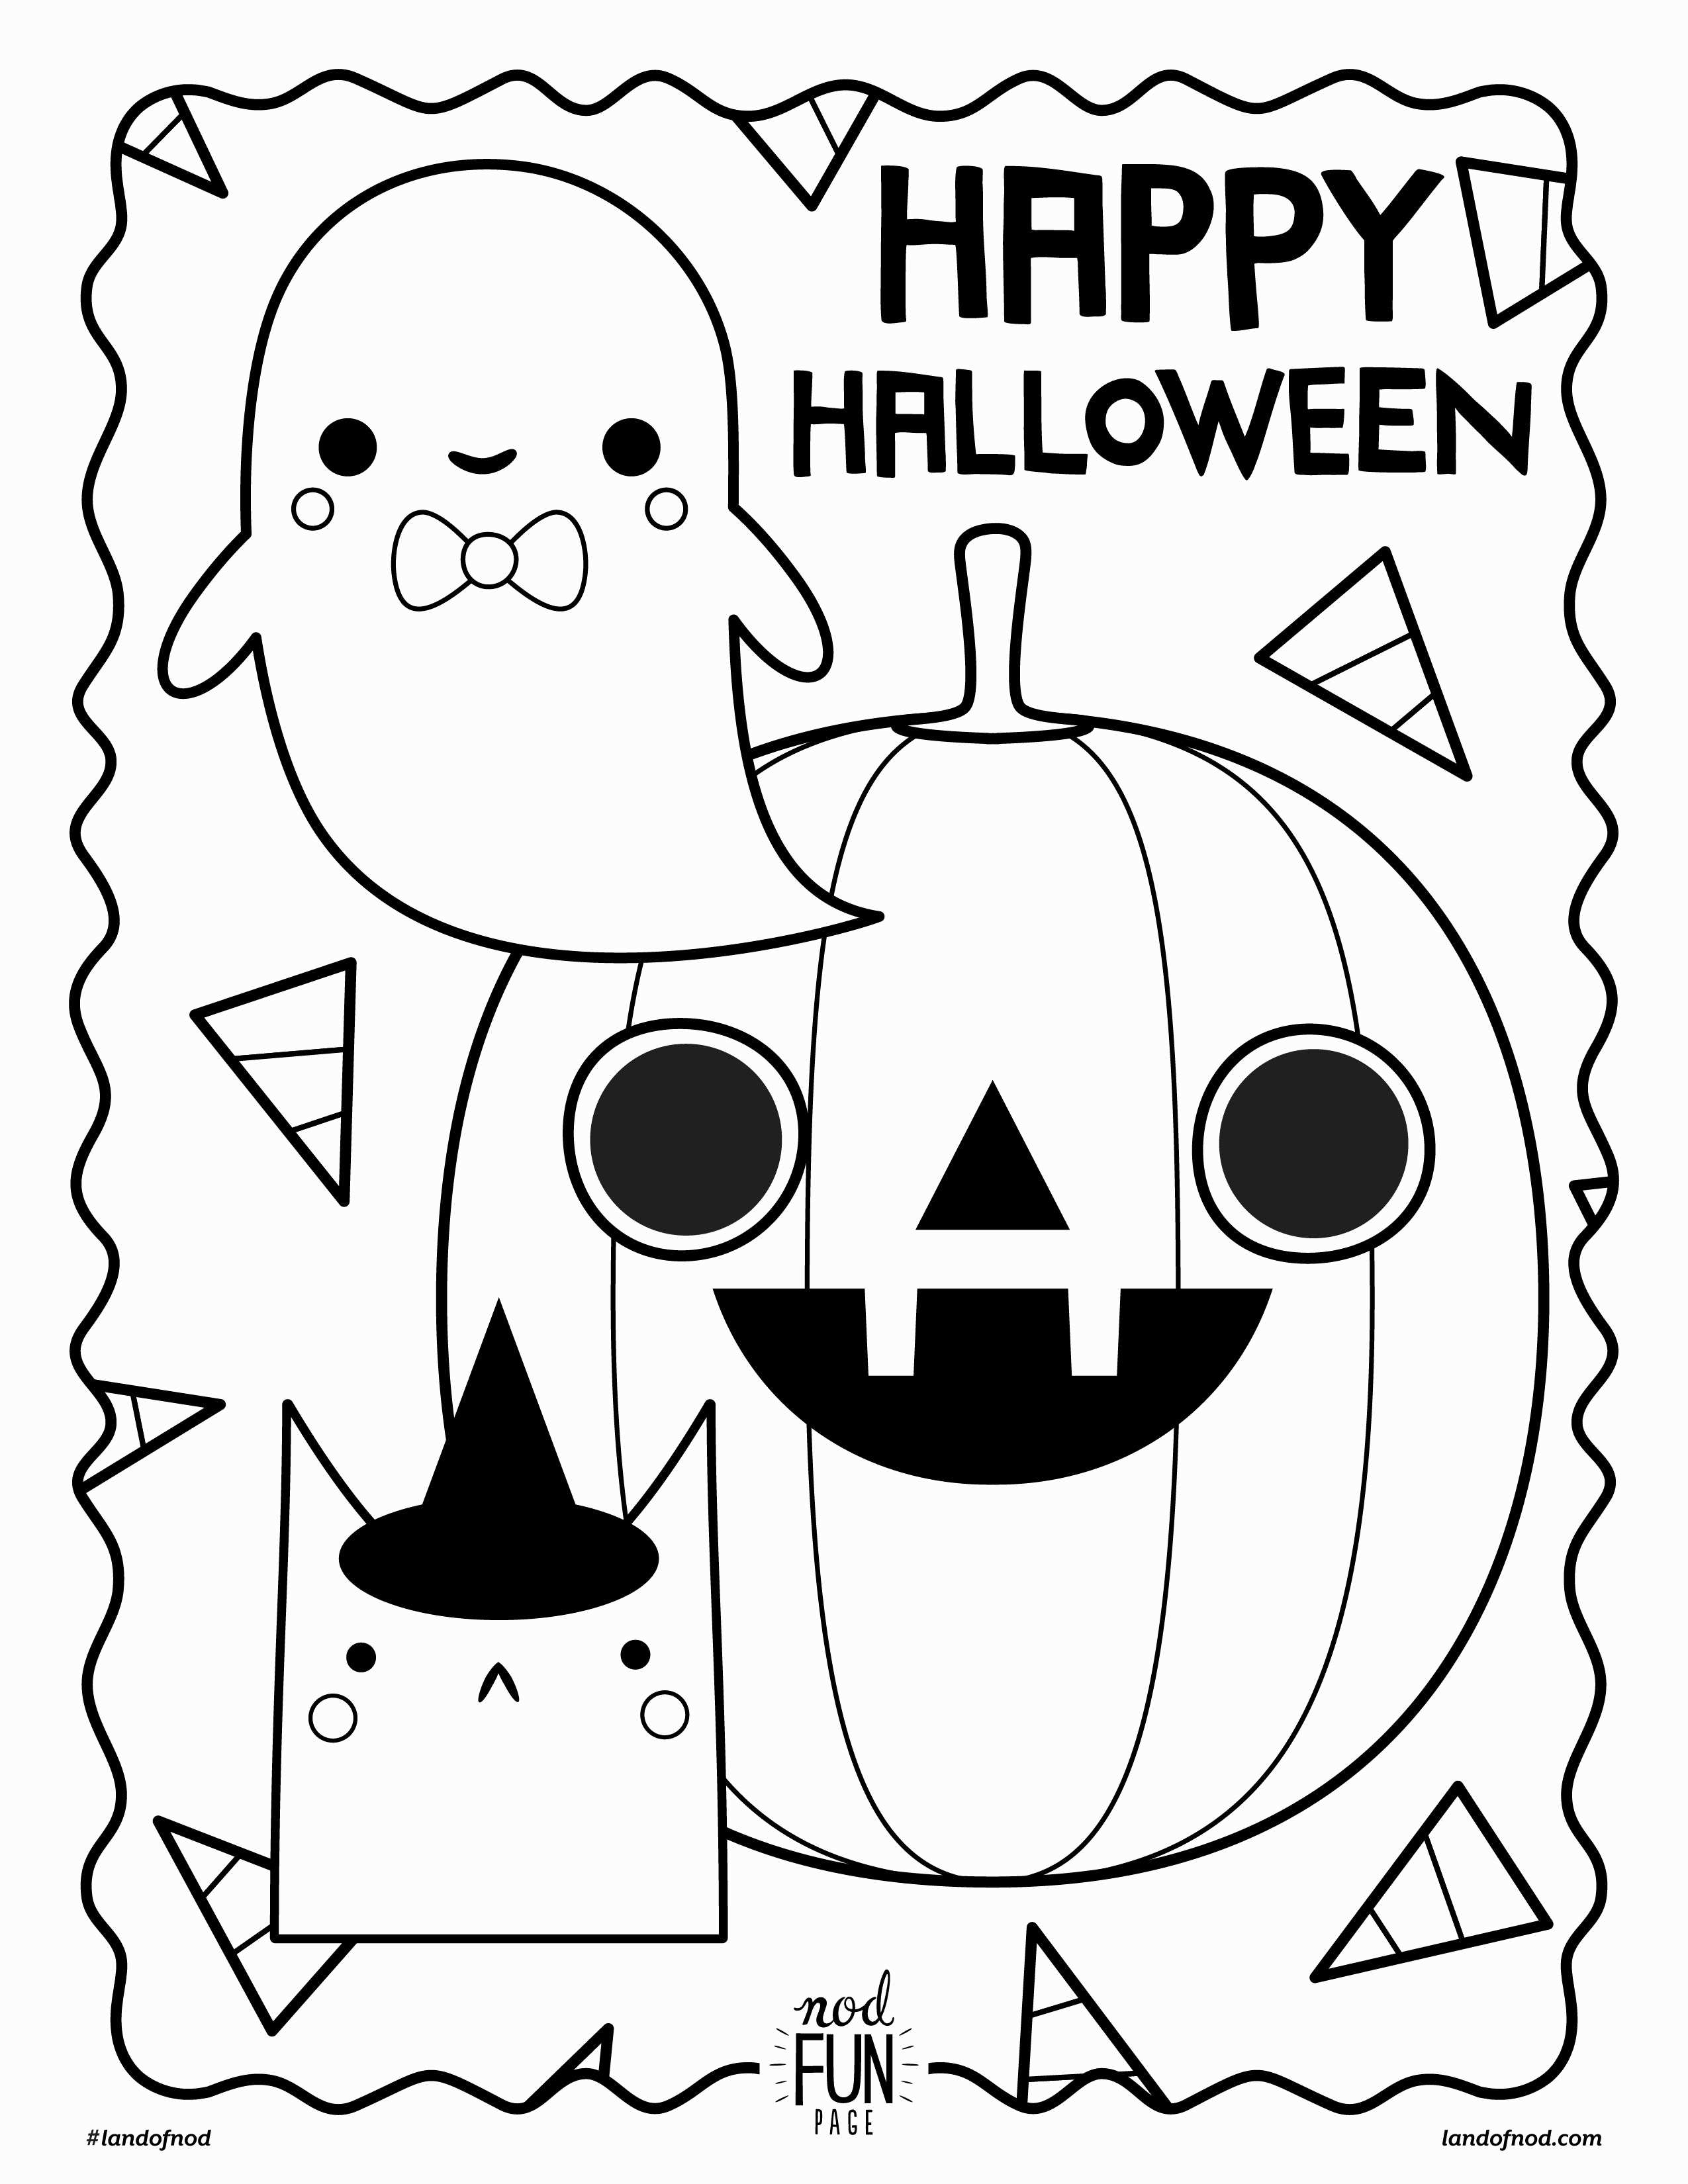 coloring halloween doodle pages christmas doodle doodle art doodling adult coloring pages doodle pages coloring halloween